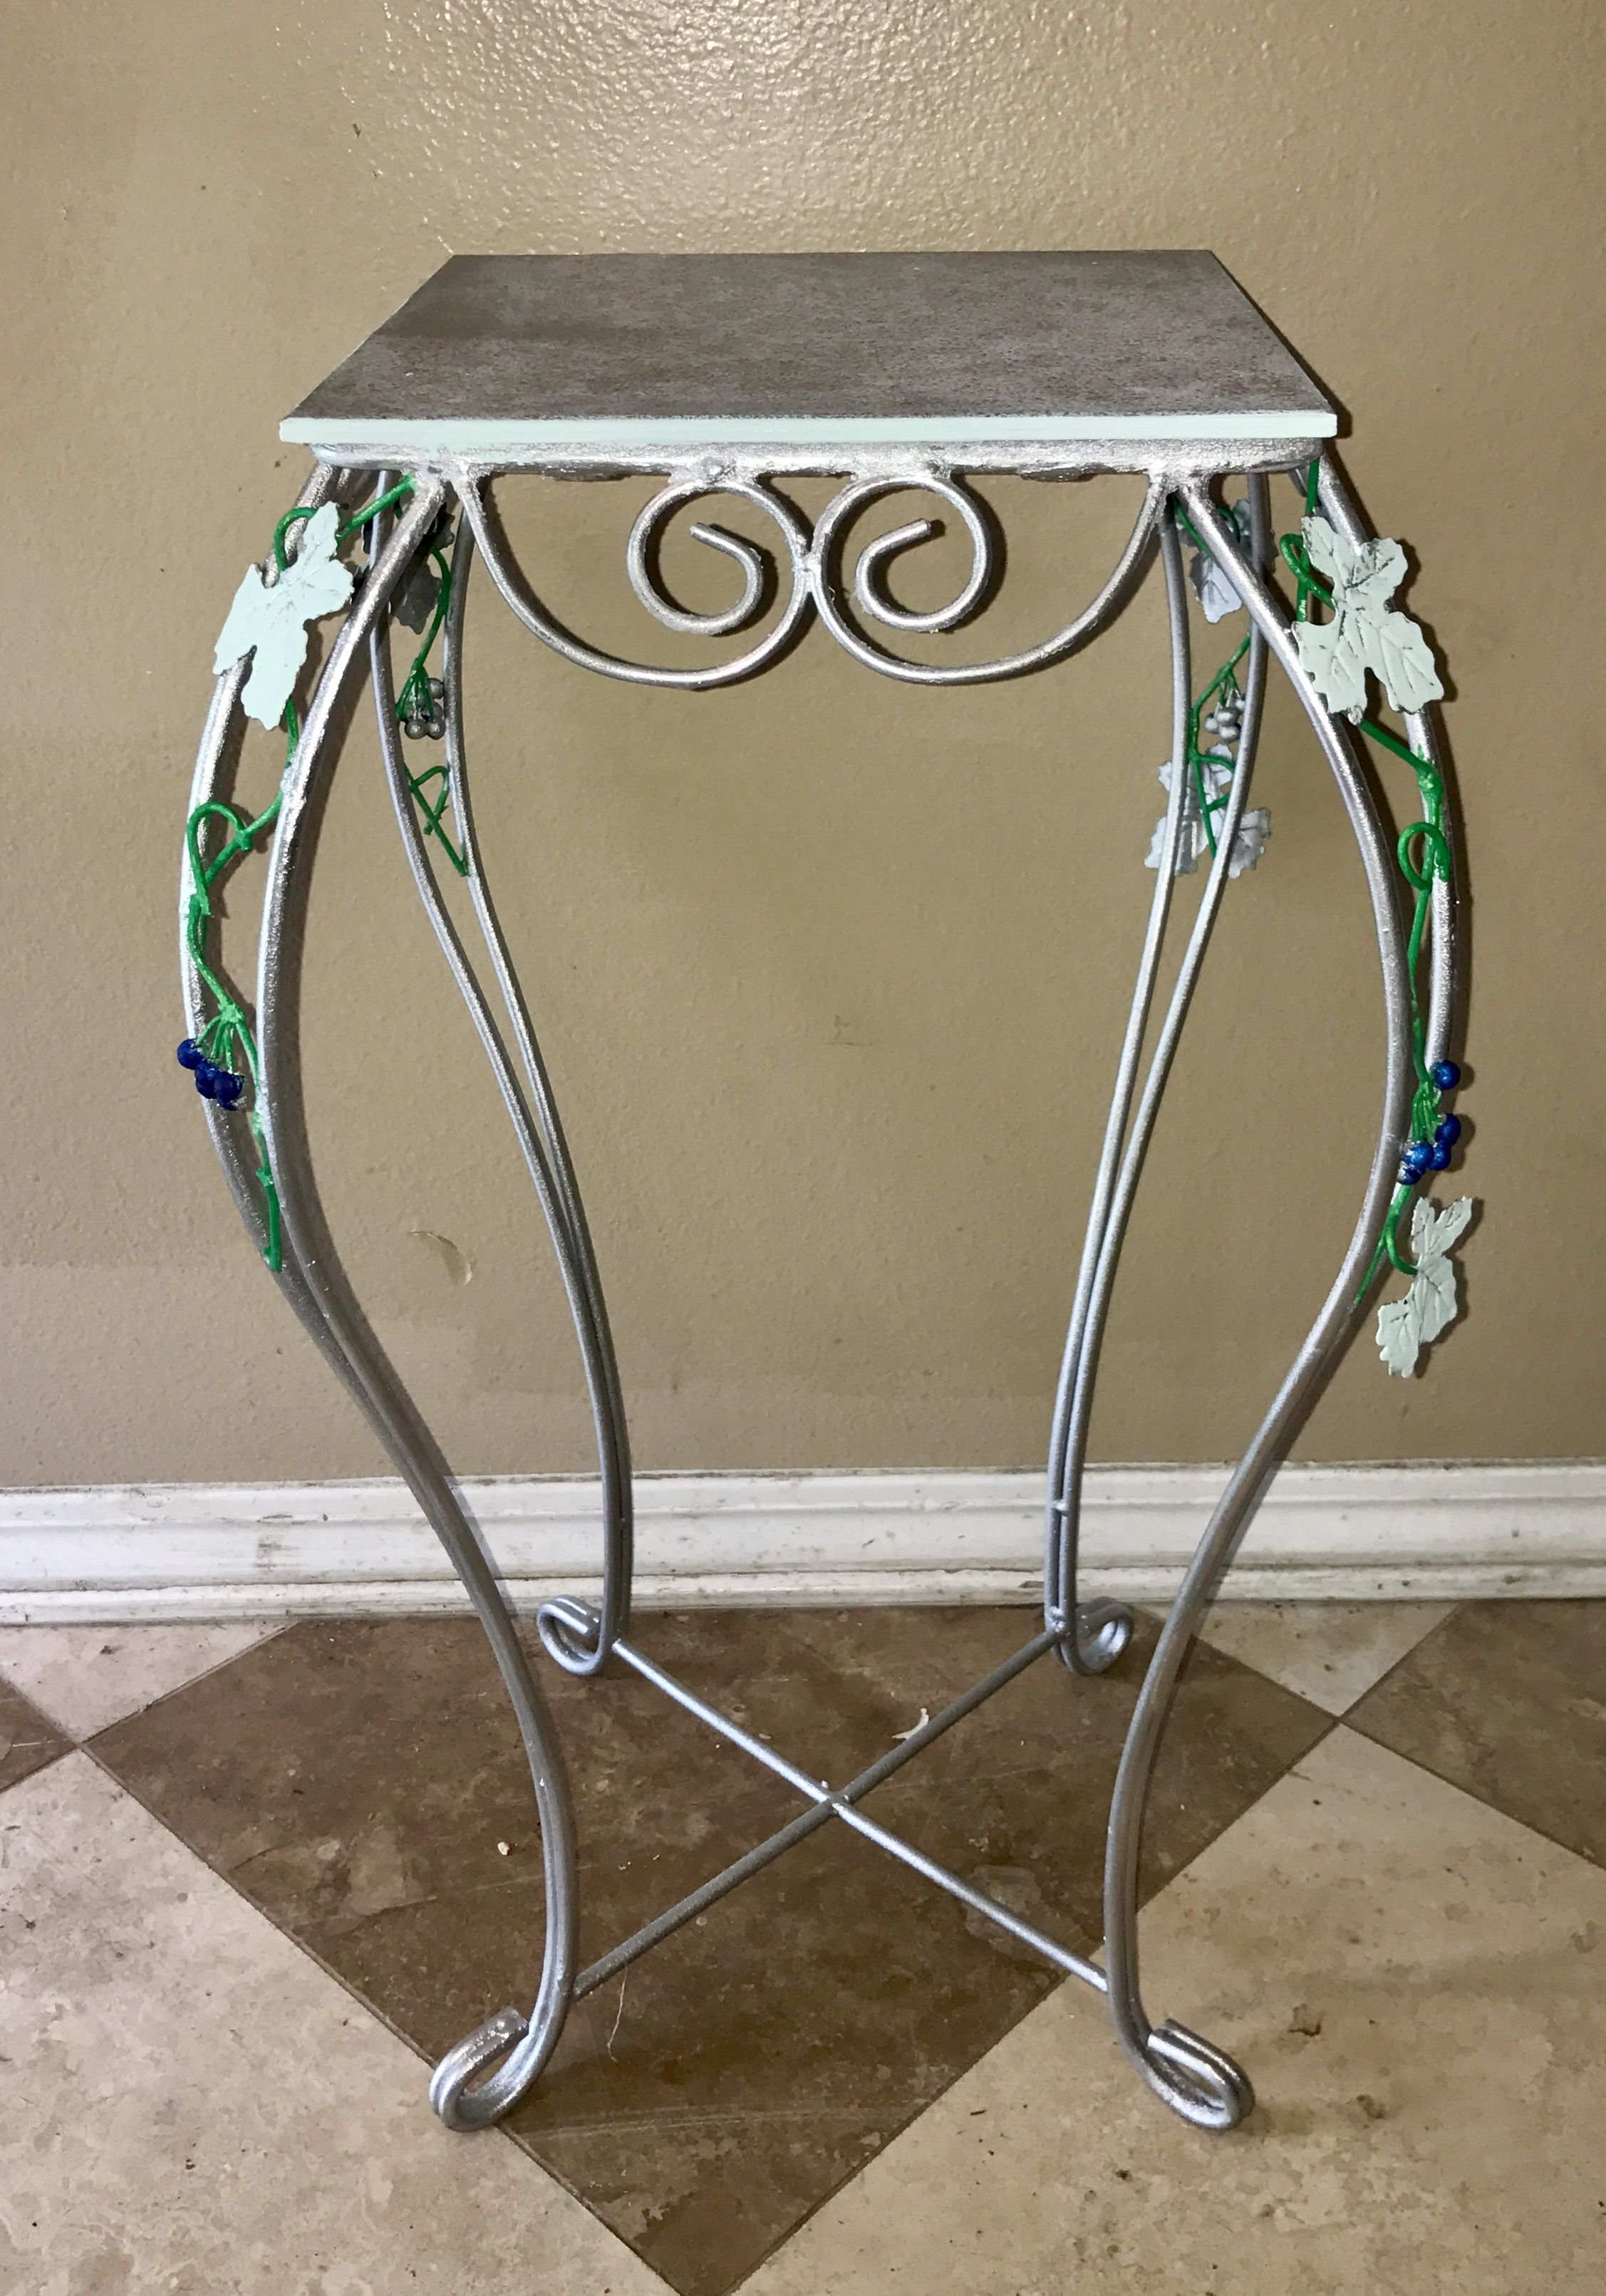 vintage tall metal silver accent table planter tile top leaf vine design round dining set white lamp astoria chair best outdoor patio furniture homesense garden linen napkins